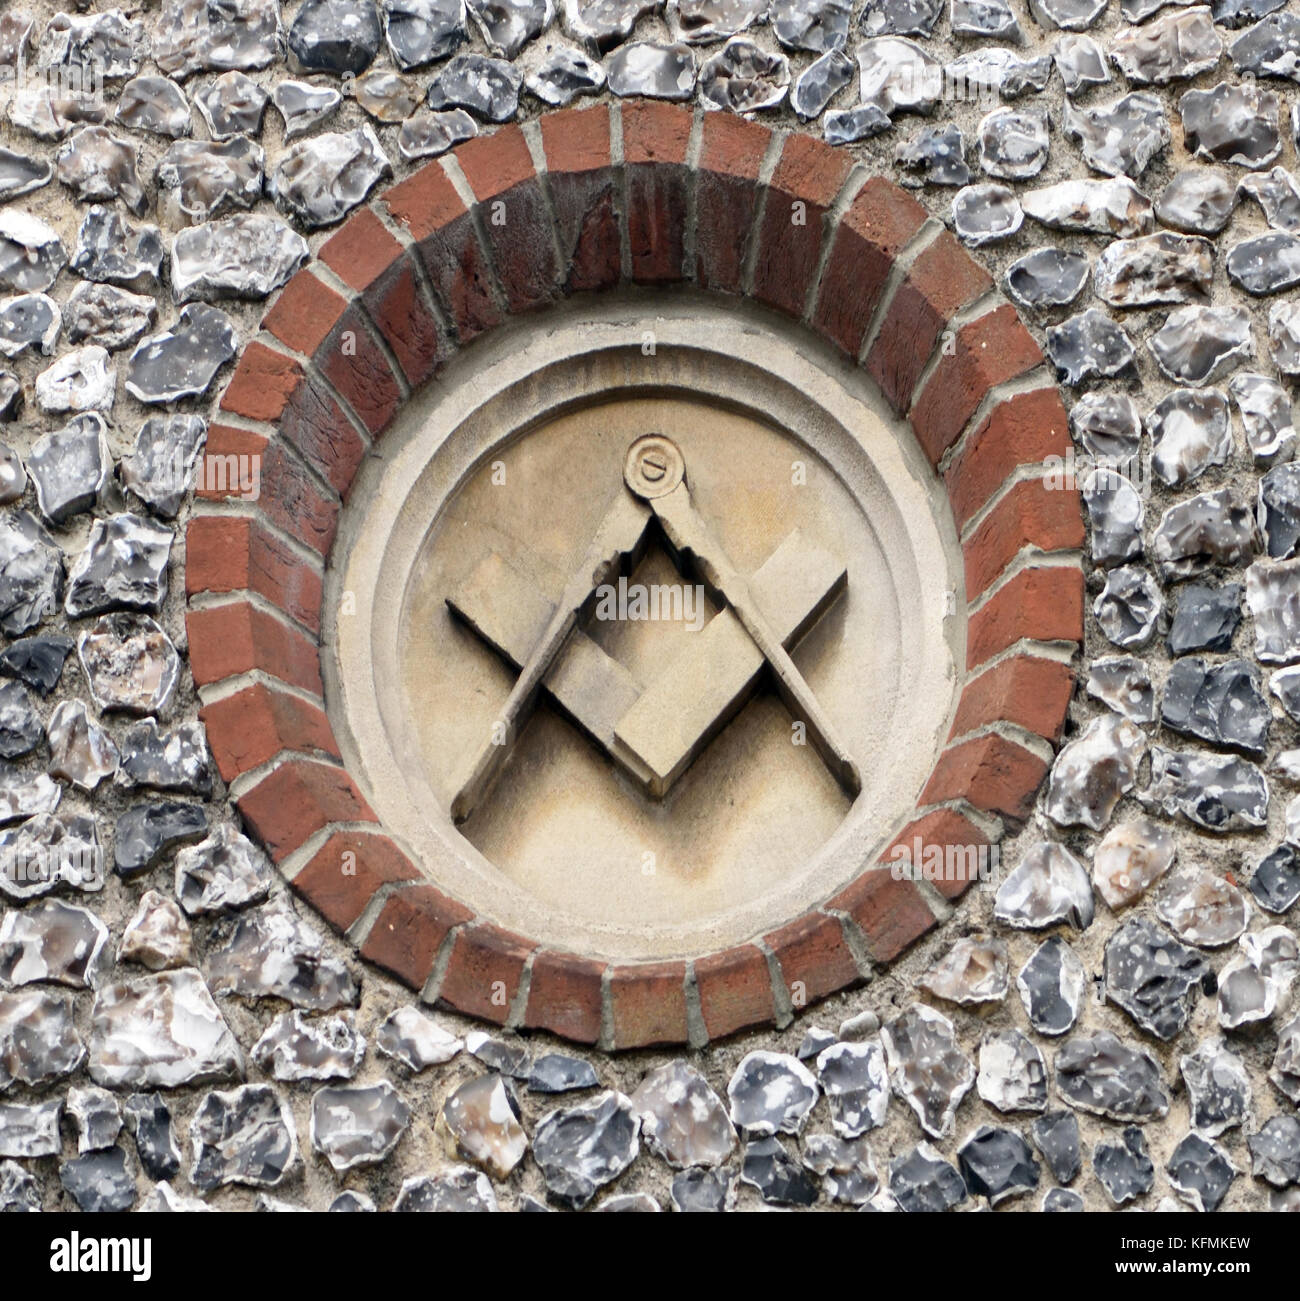 Masonic Symbols Stock Photos Masonic Symbols Stock Images Alamy